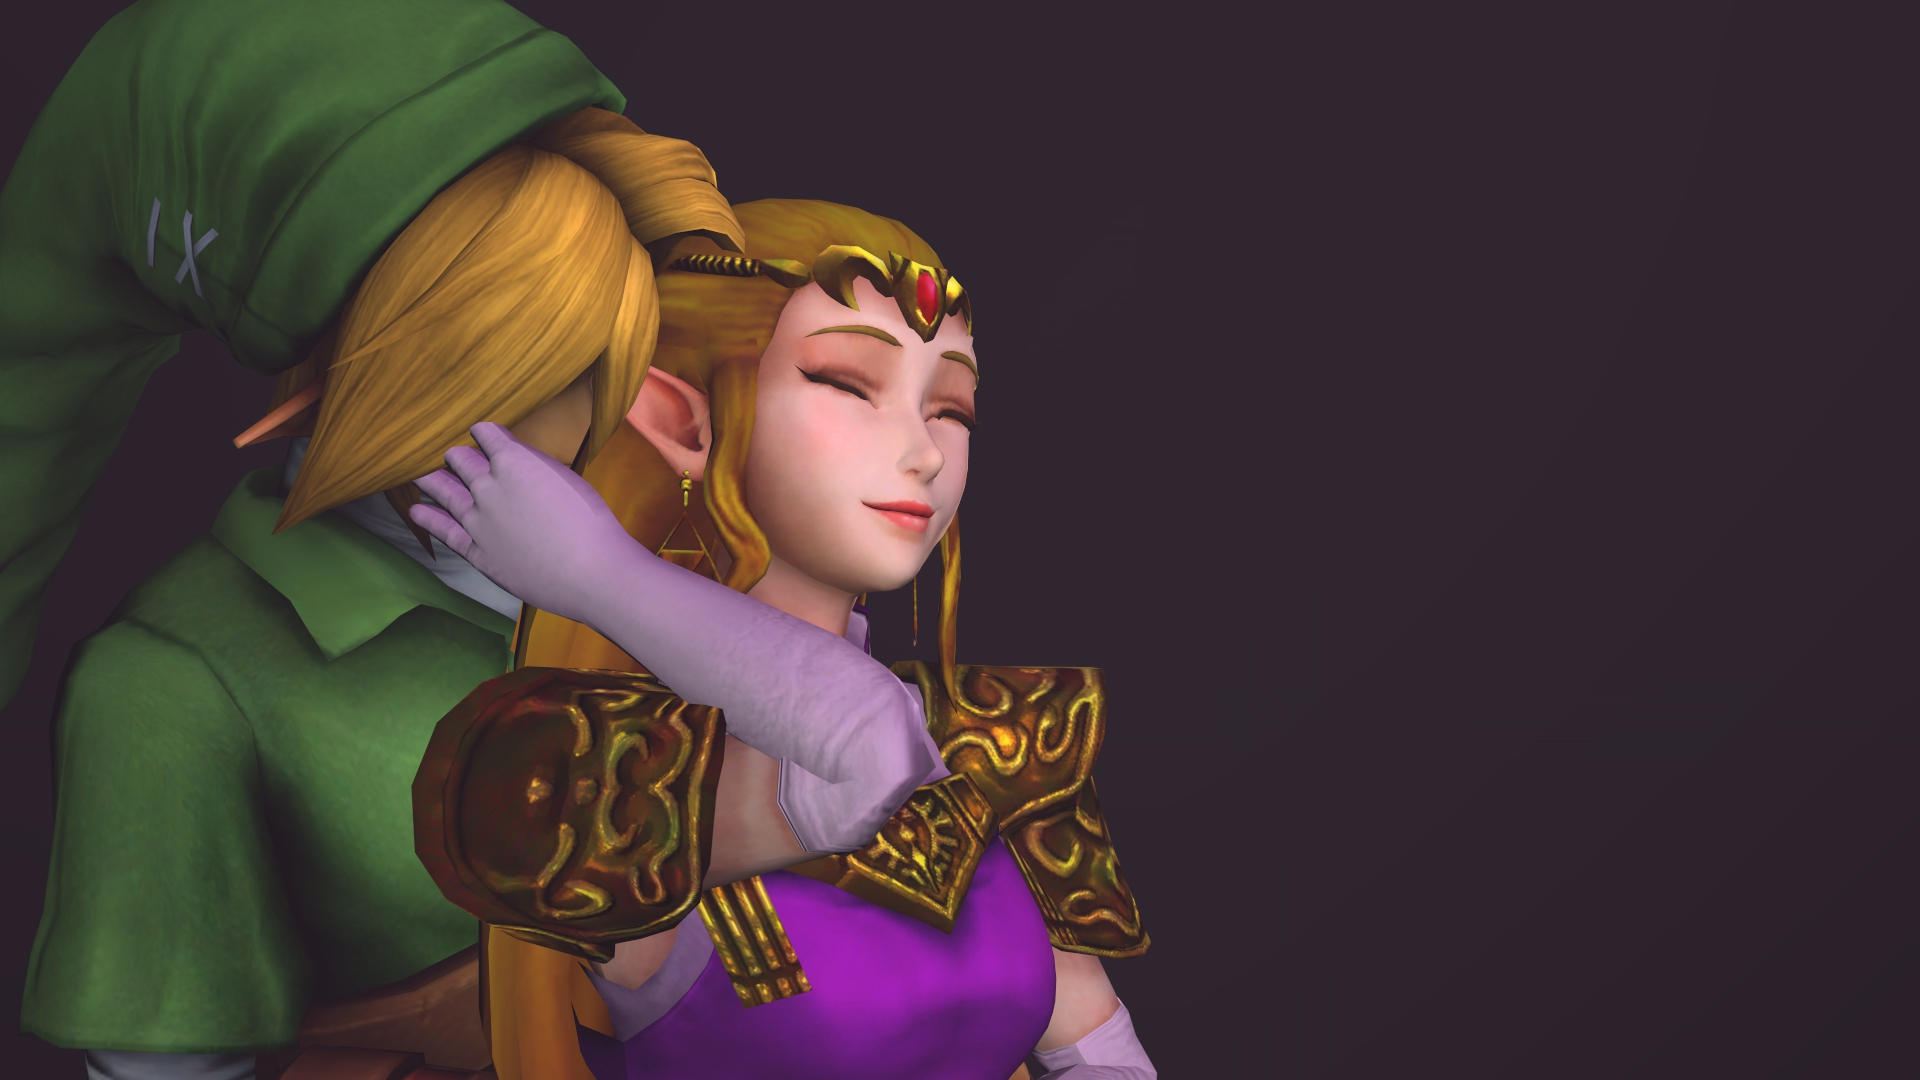 Steam Workshop Hyrule Warriors Princess Zelda Ocarina Of Time